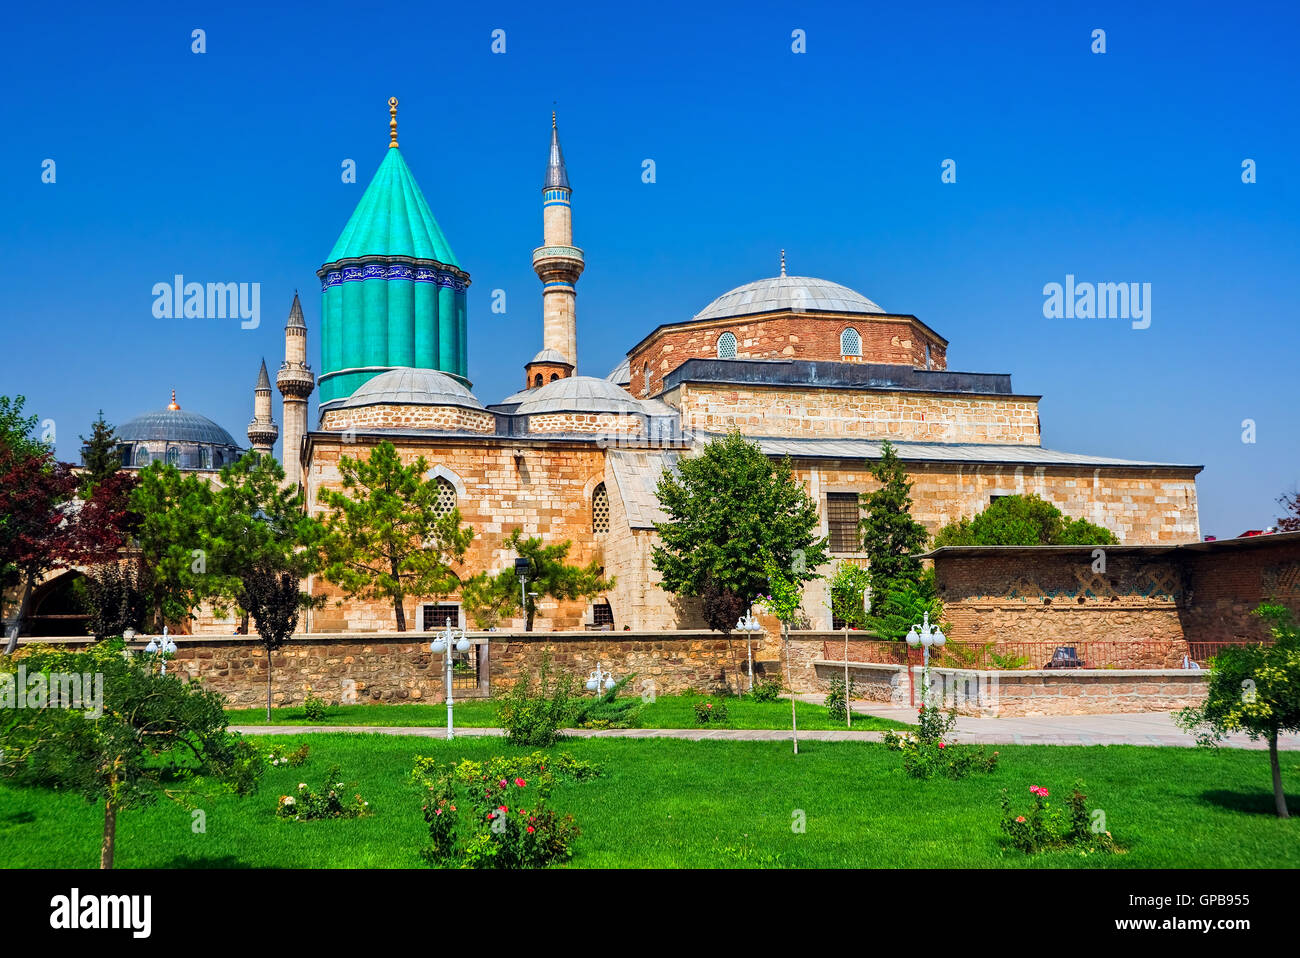 Tomb of Mevlana, the founder of Mevlevi sufi dervish order, with prominent green tower in Konya, Turkey - Stock Image